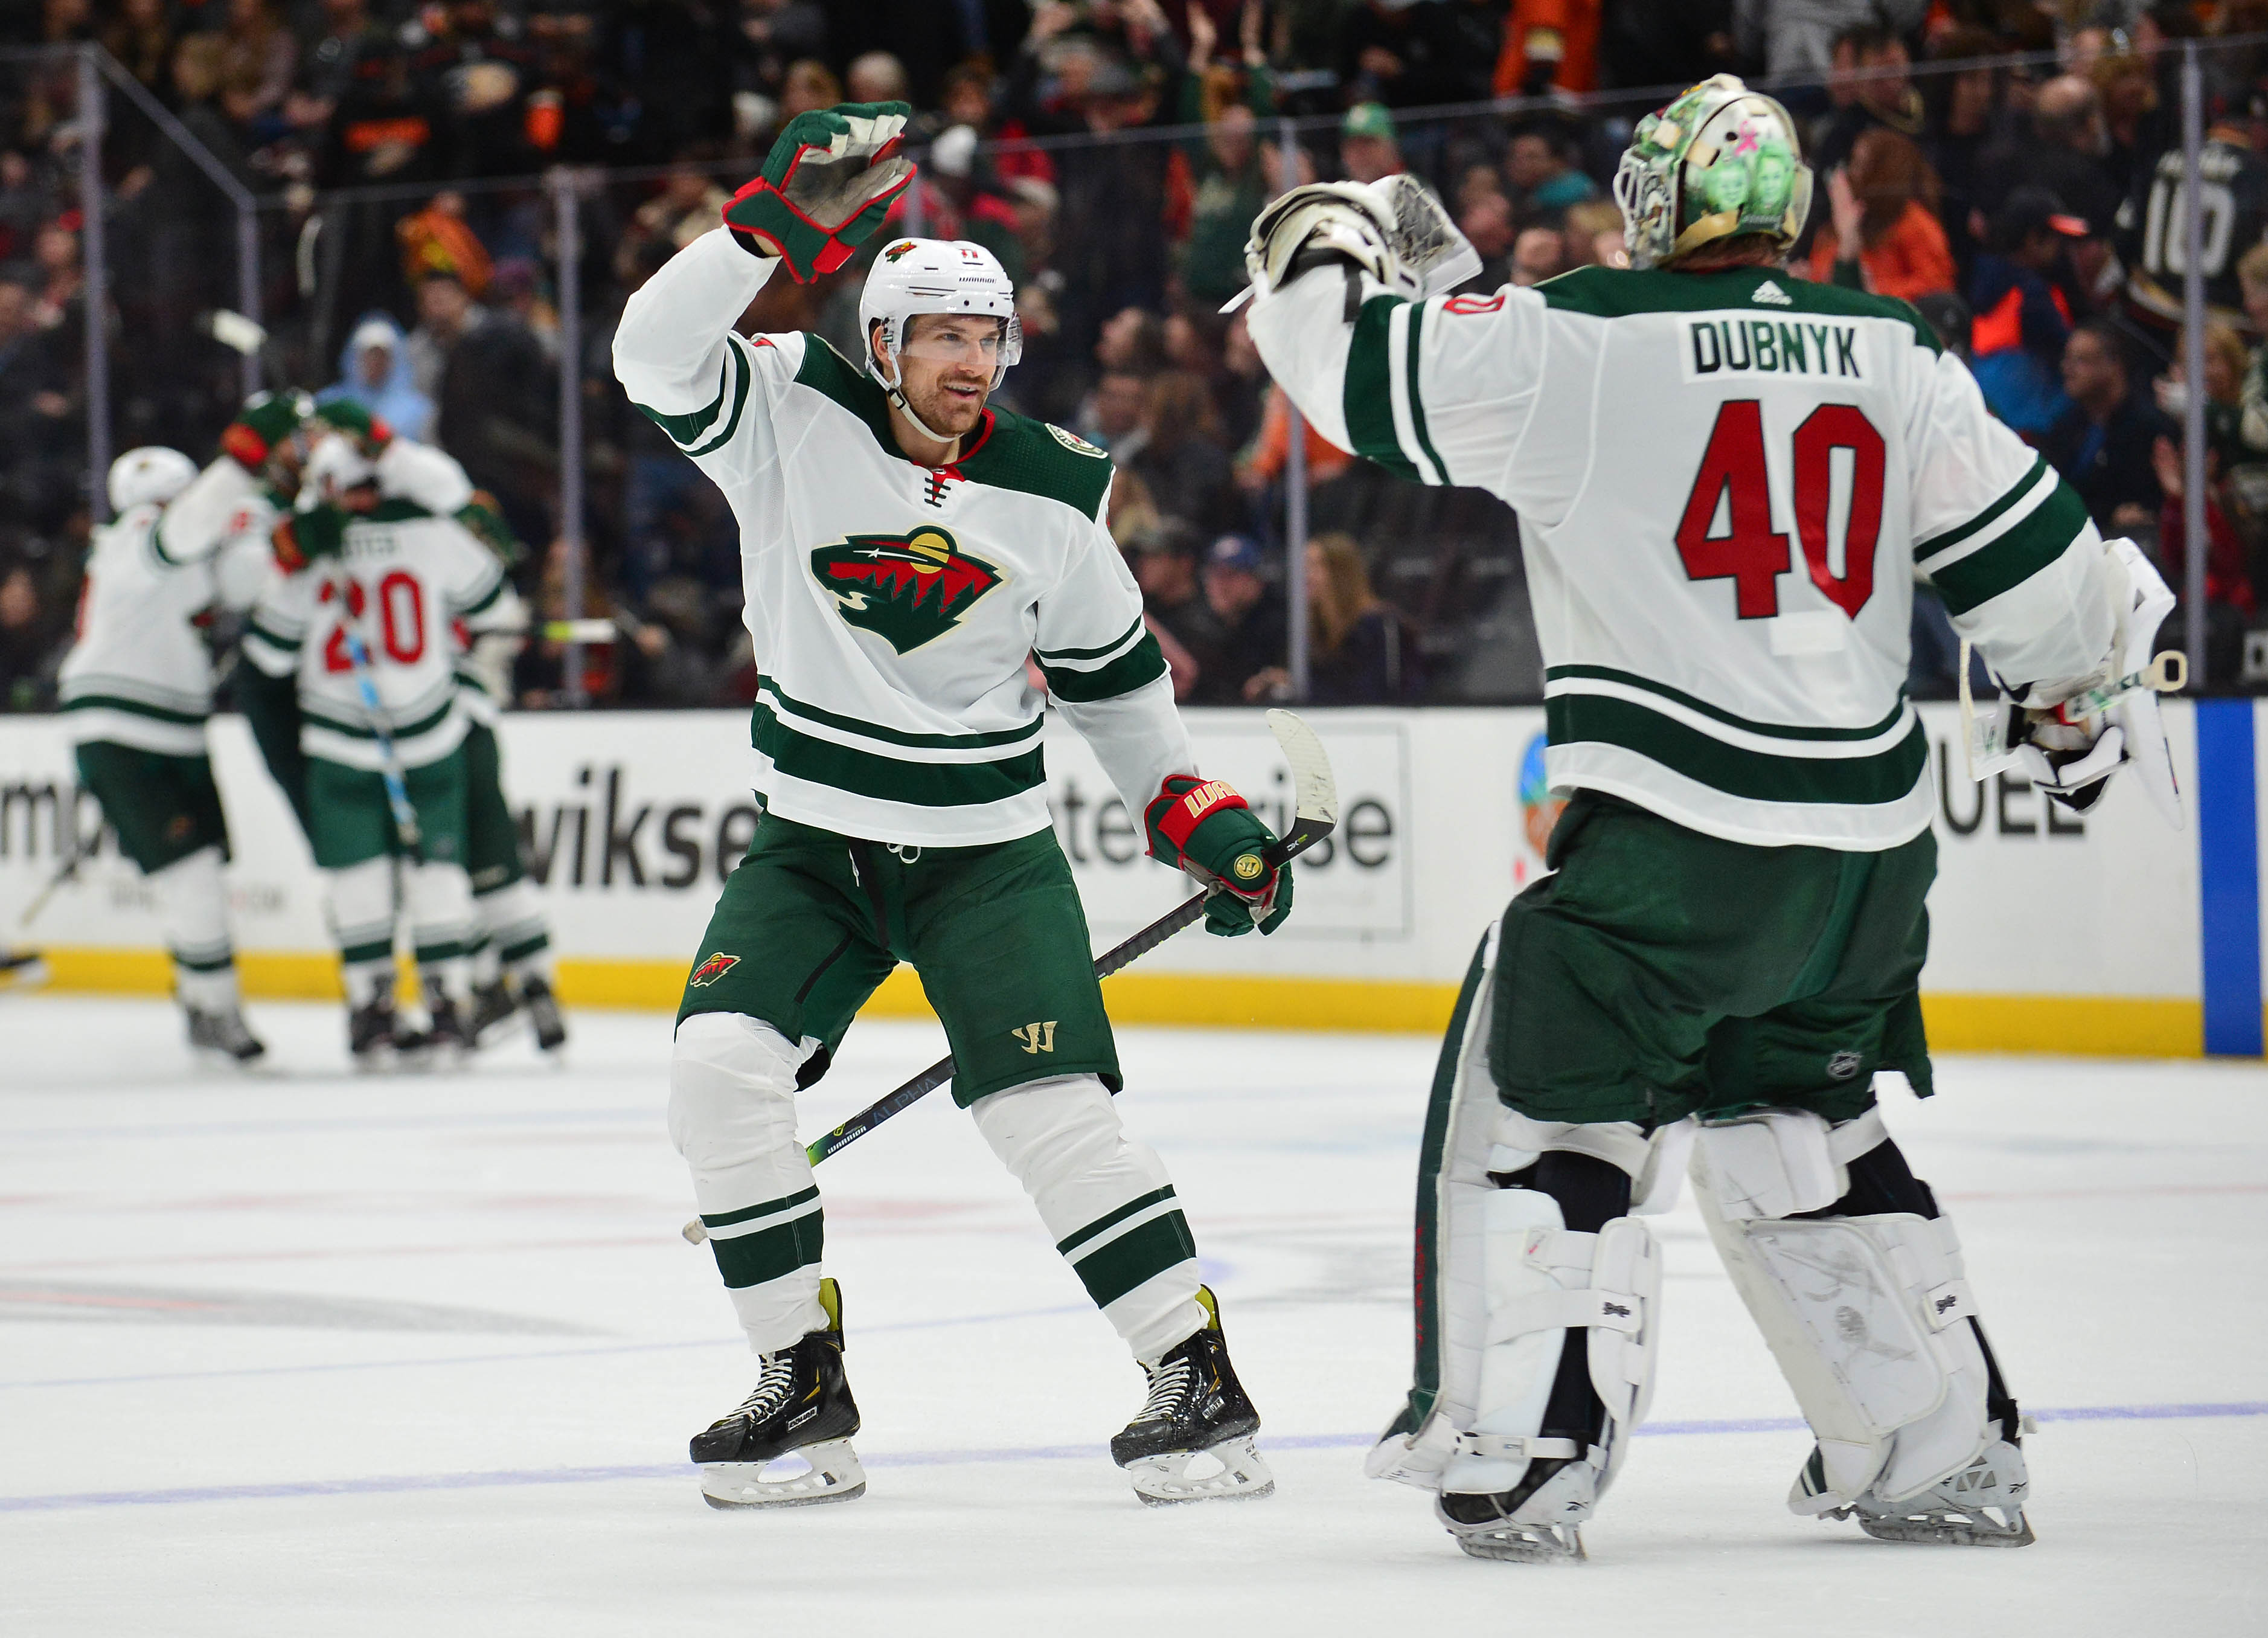 The Best Goaltenders of All Time for the Minnesota Wild